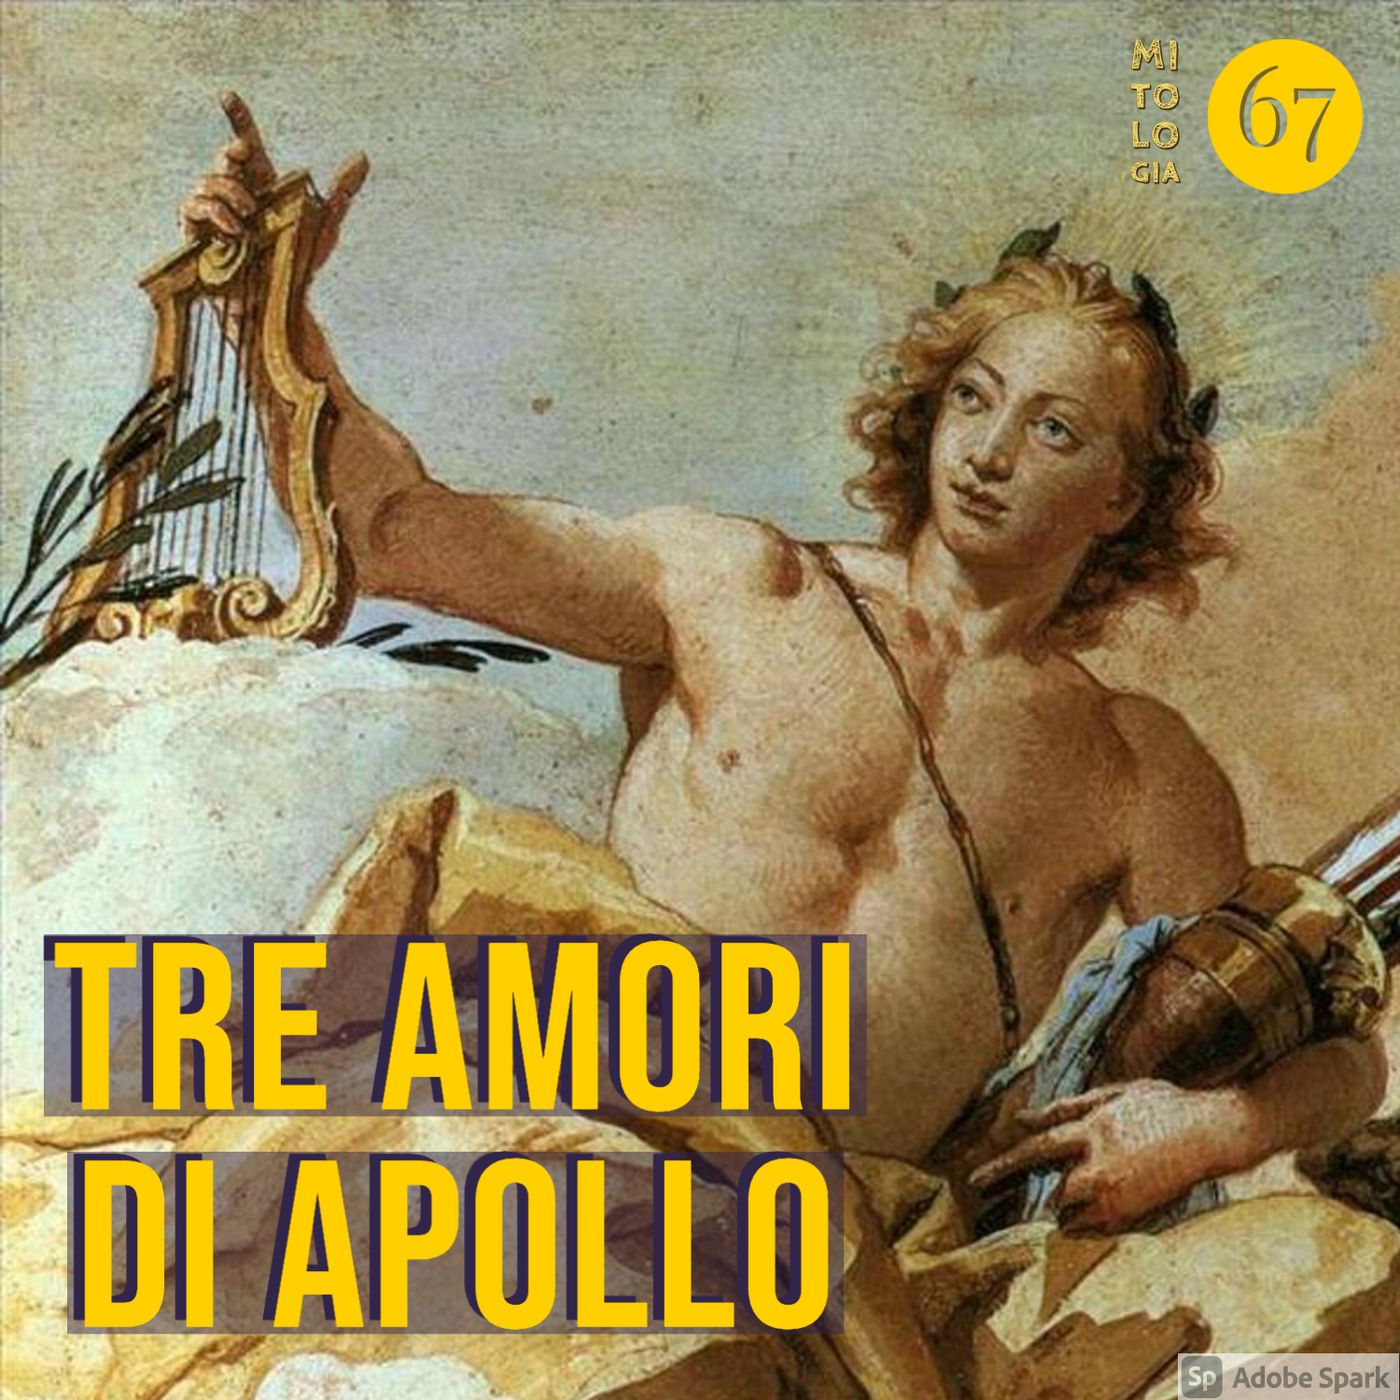 Tre amori di Apollo